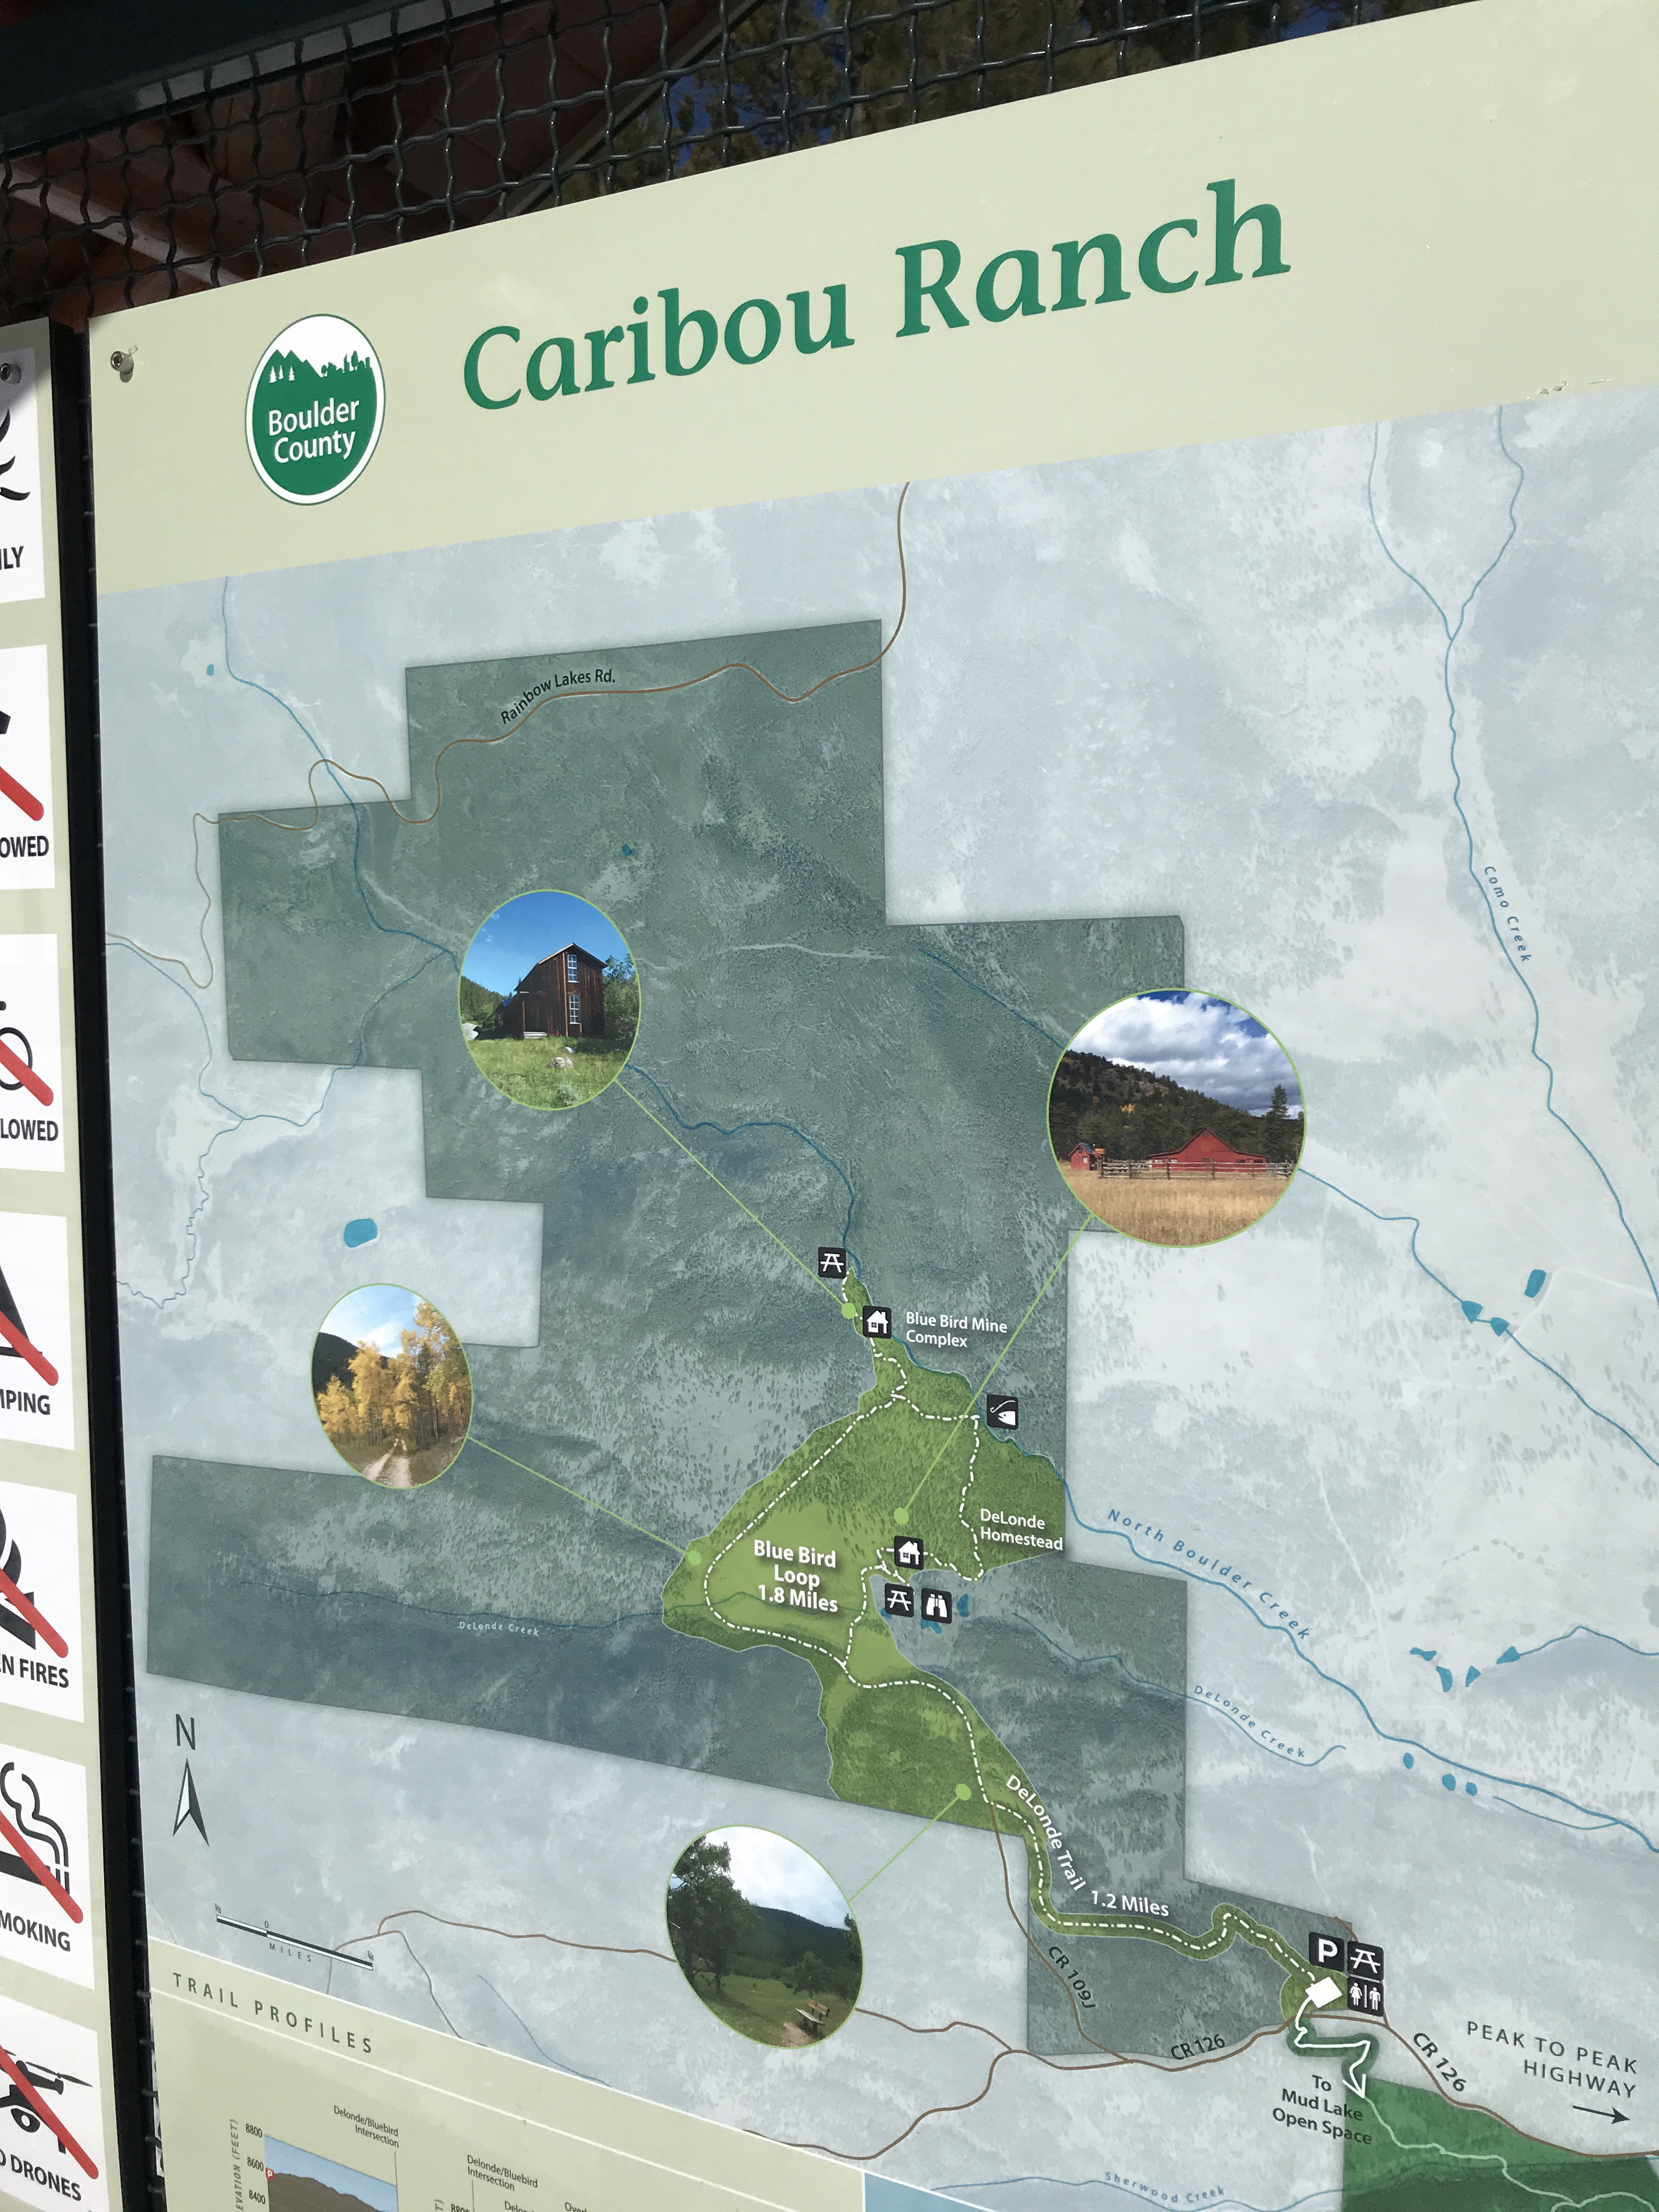 Caribou ranch map